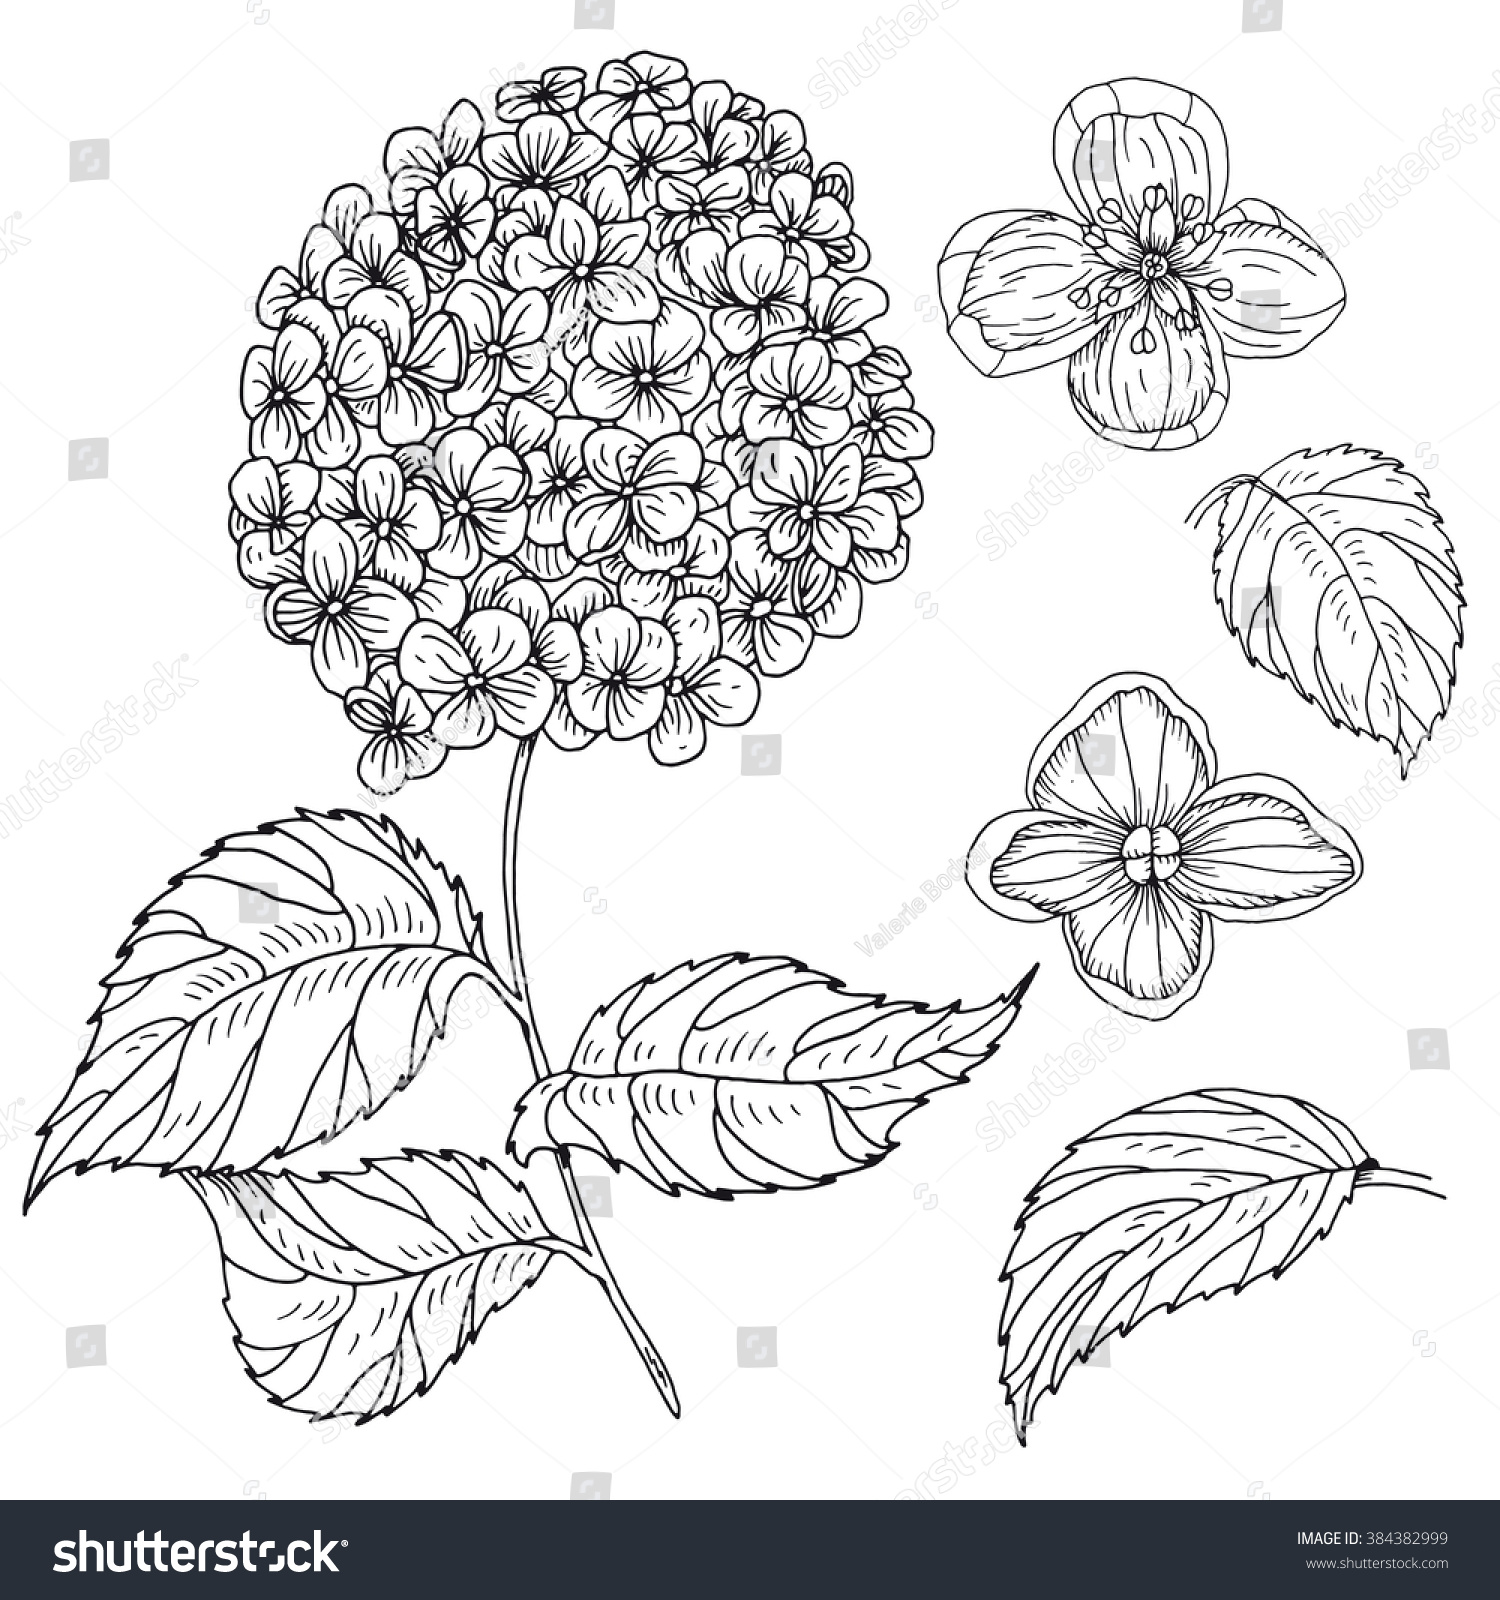 Hydrangea flower coloring pages - Hand Drawn Inky Hydrangea Branch Flowers And Leaves Monochrome Hydrangea Flower Isolated On White